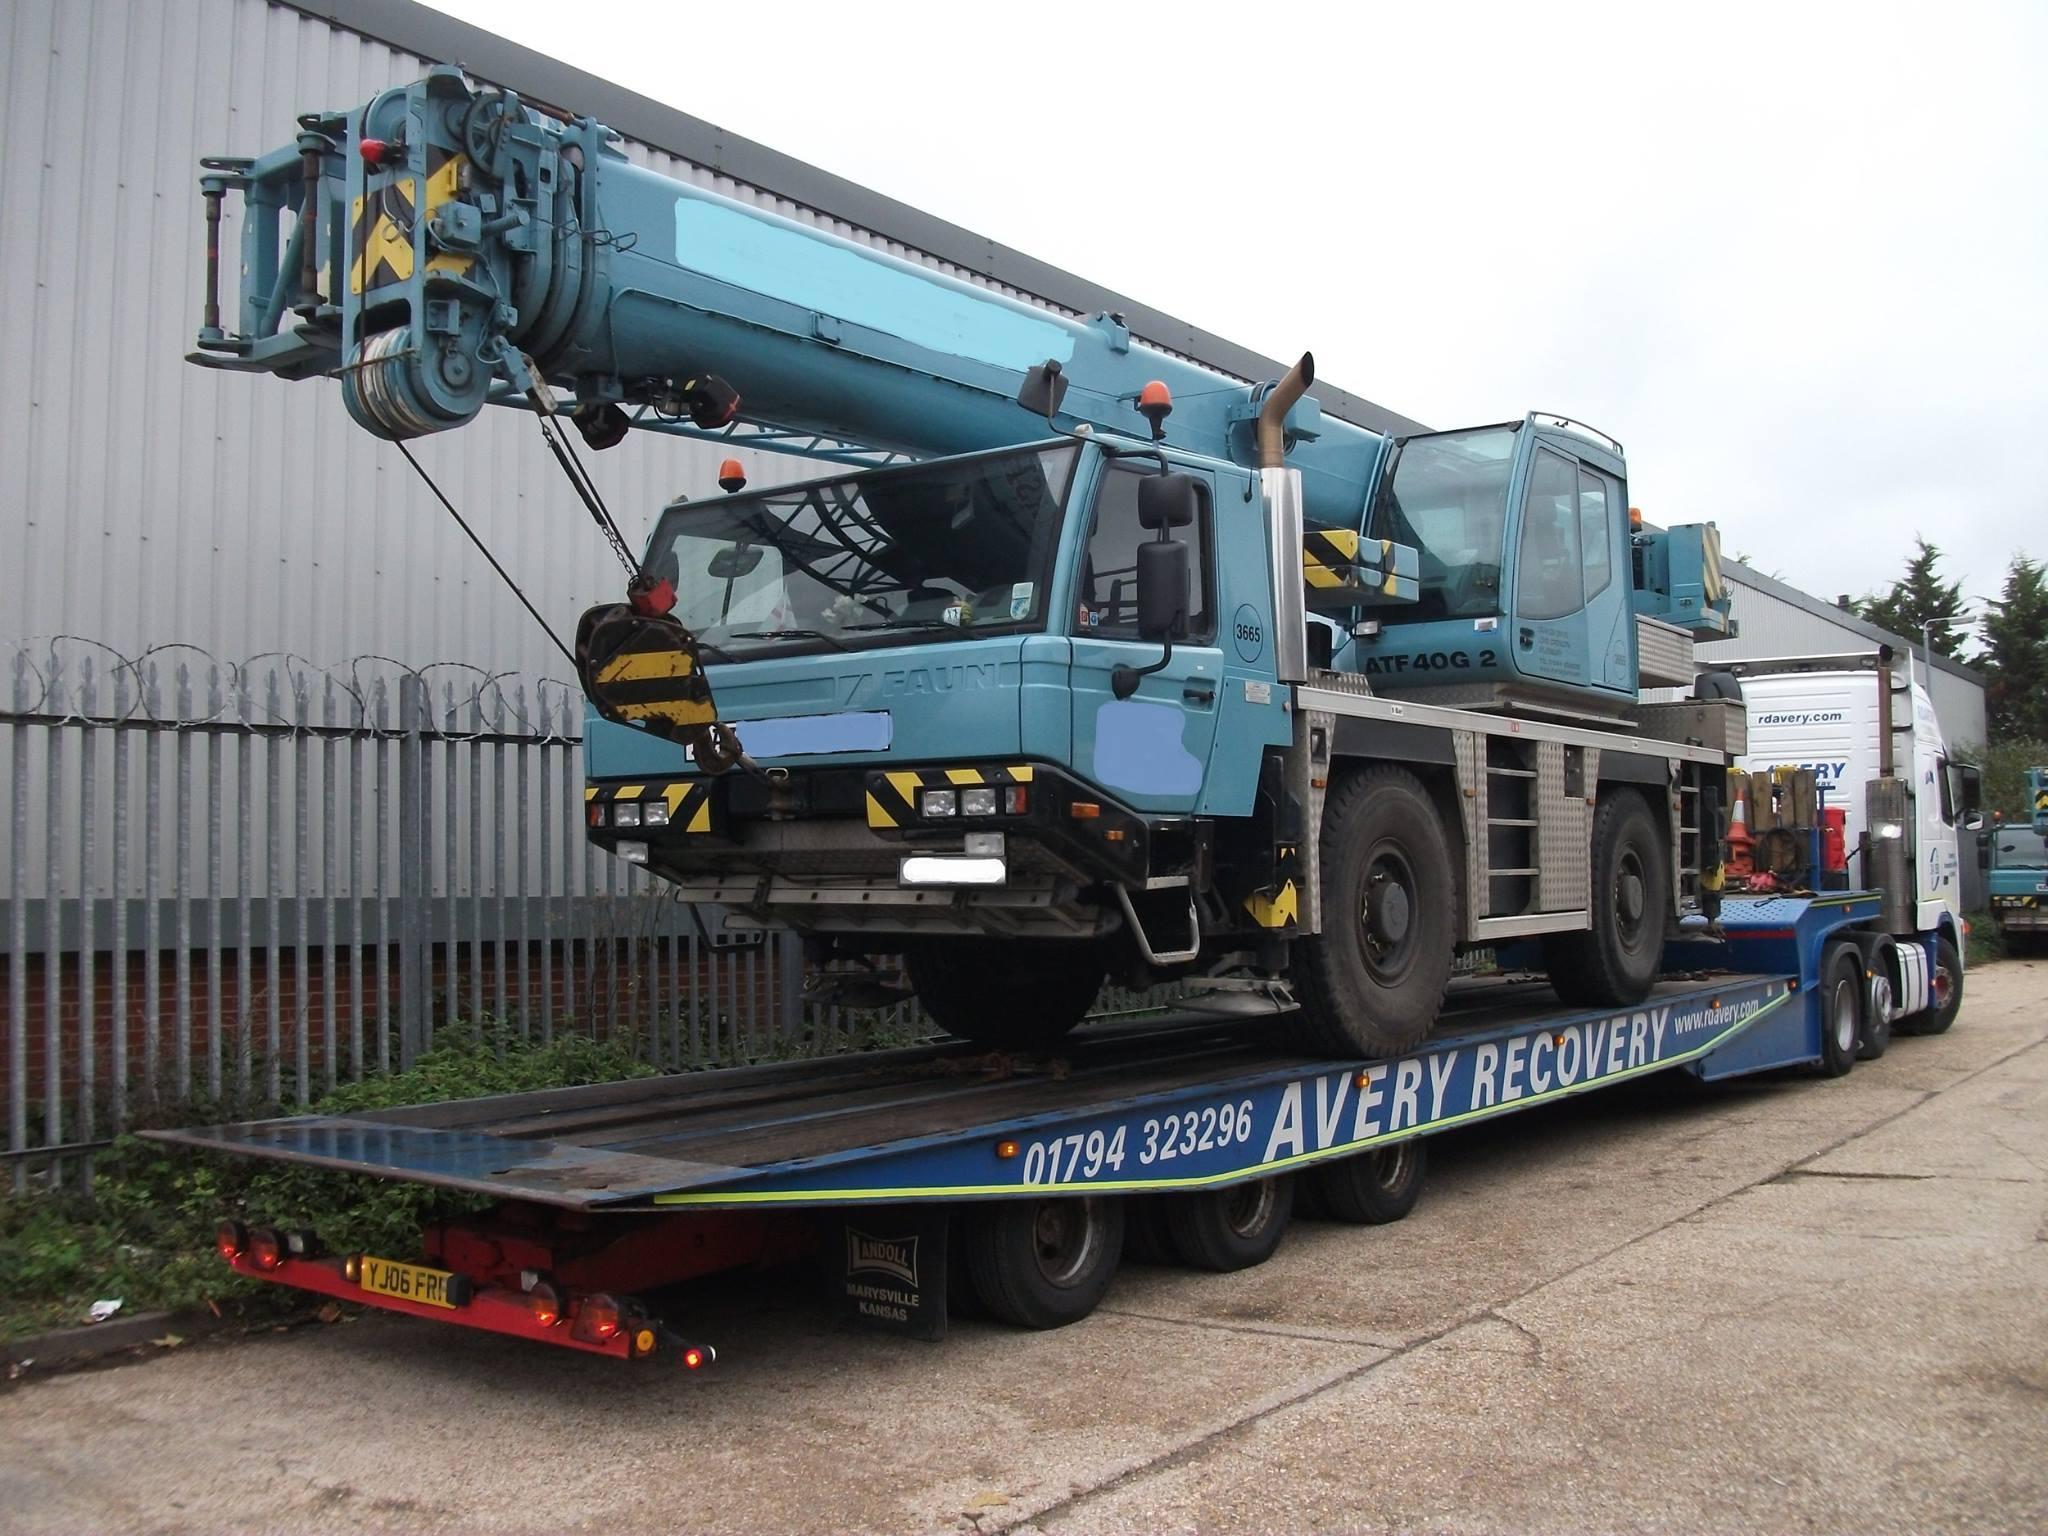 Heavy Vehicle Recovery Winchester - We regularly recover heavy goods vehicles including lorries, plant, buses and coaches from road or off-road situations in the Winchester area.